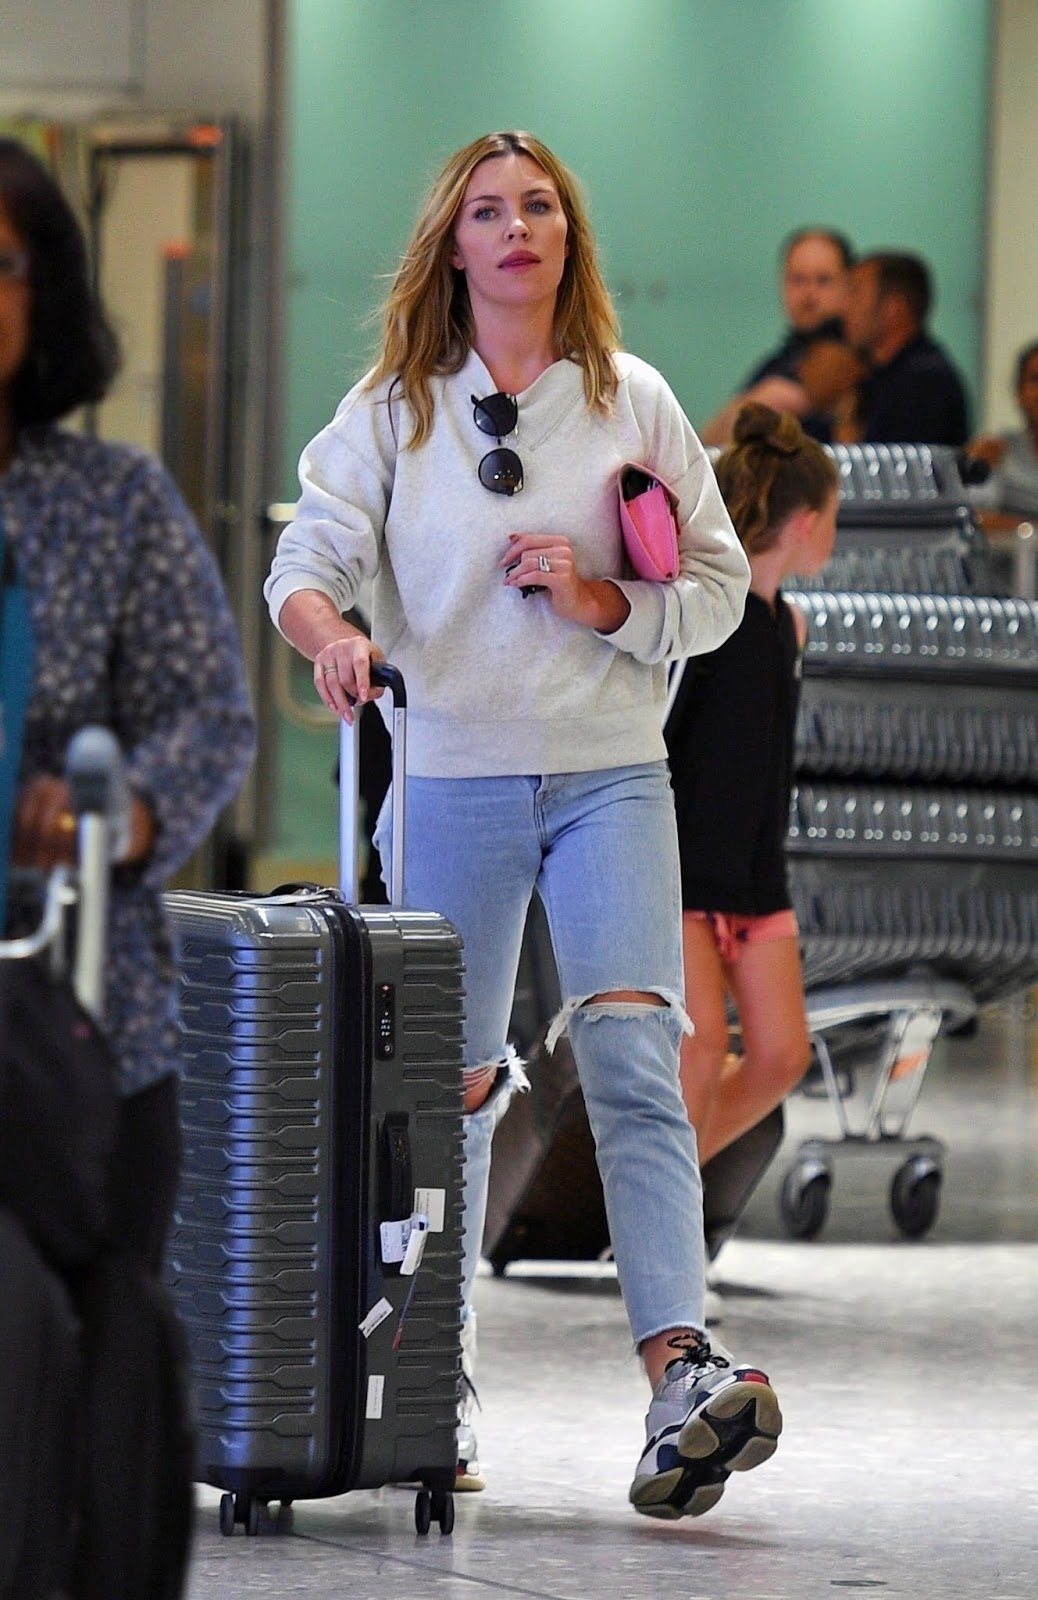 Abbey Clancy returns from a weeks holiday in the Maldives - London 06/01/2018